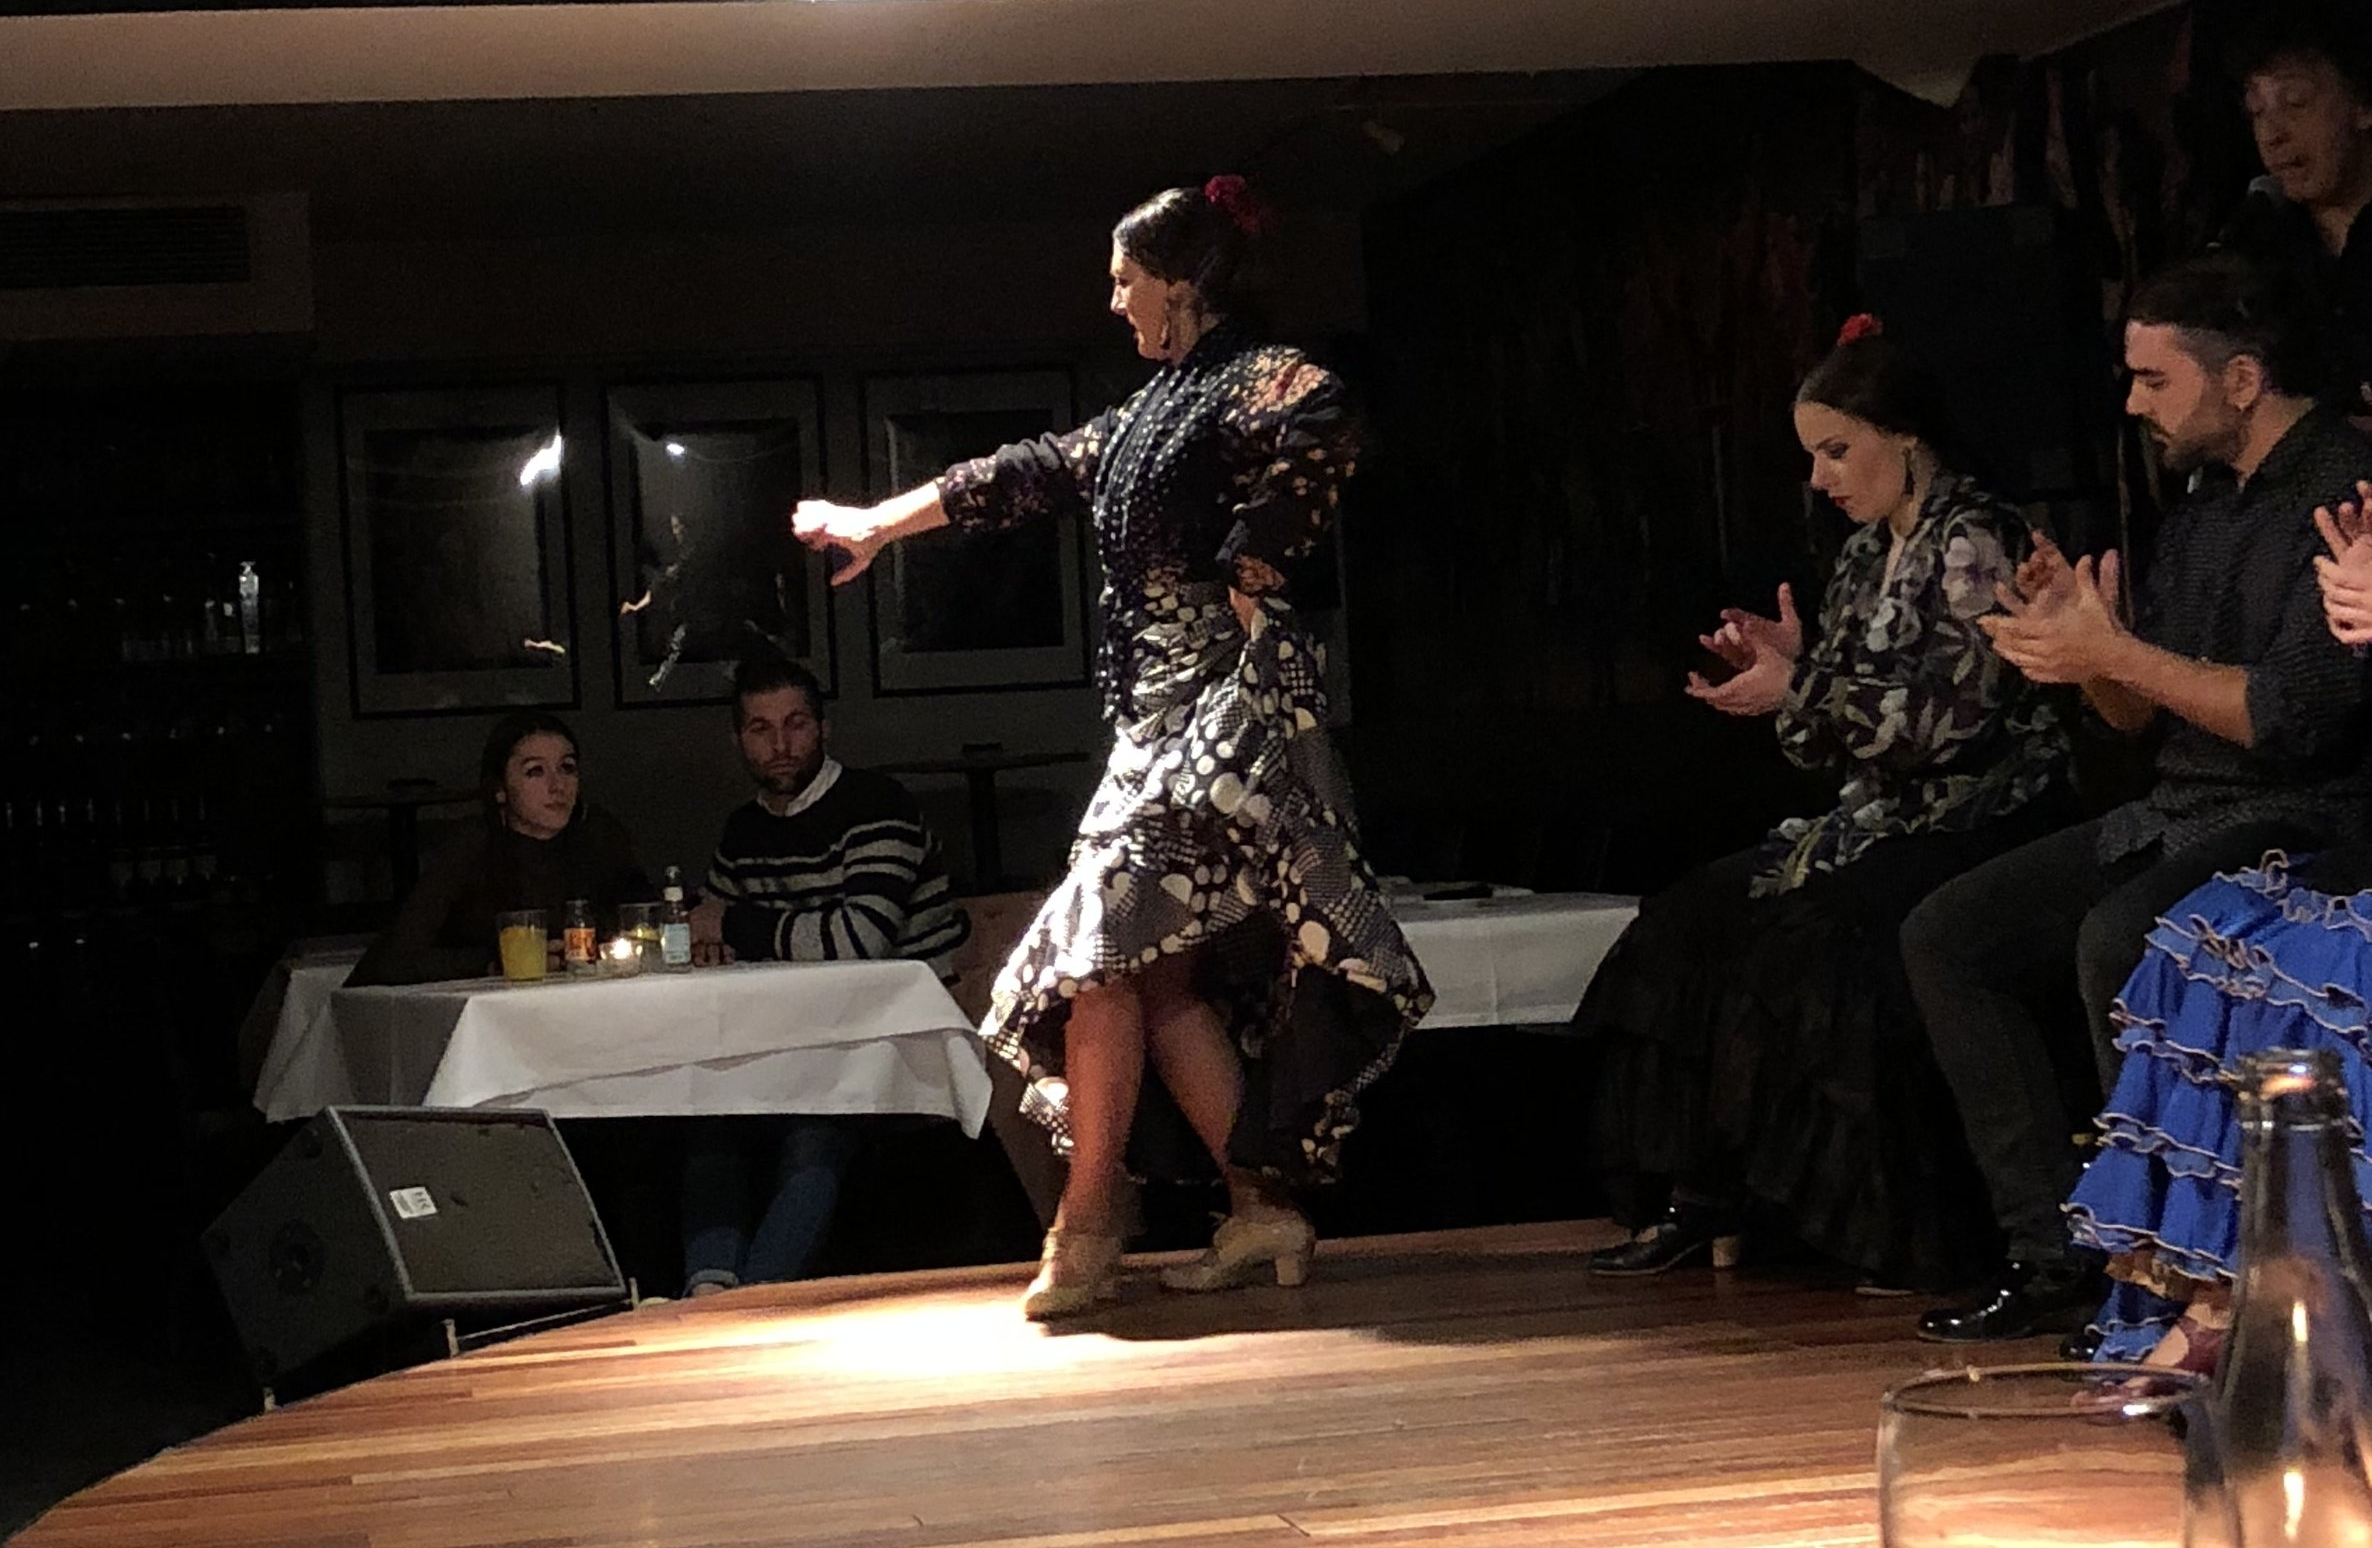 Amazing flamenco show at Las Carboneras! These people should be famous, they're so passionate and talented.